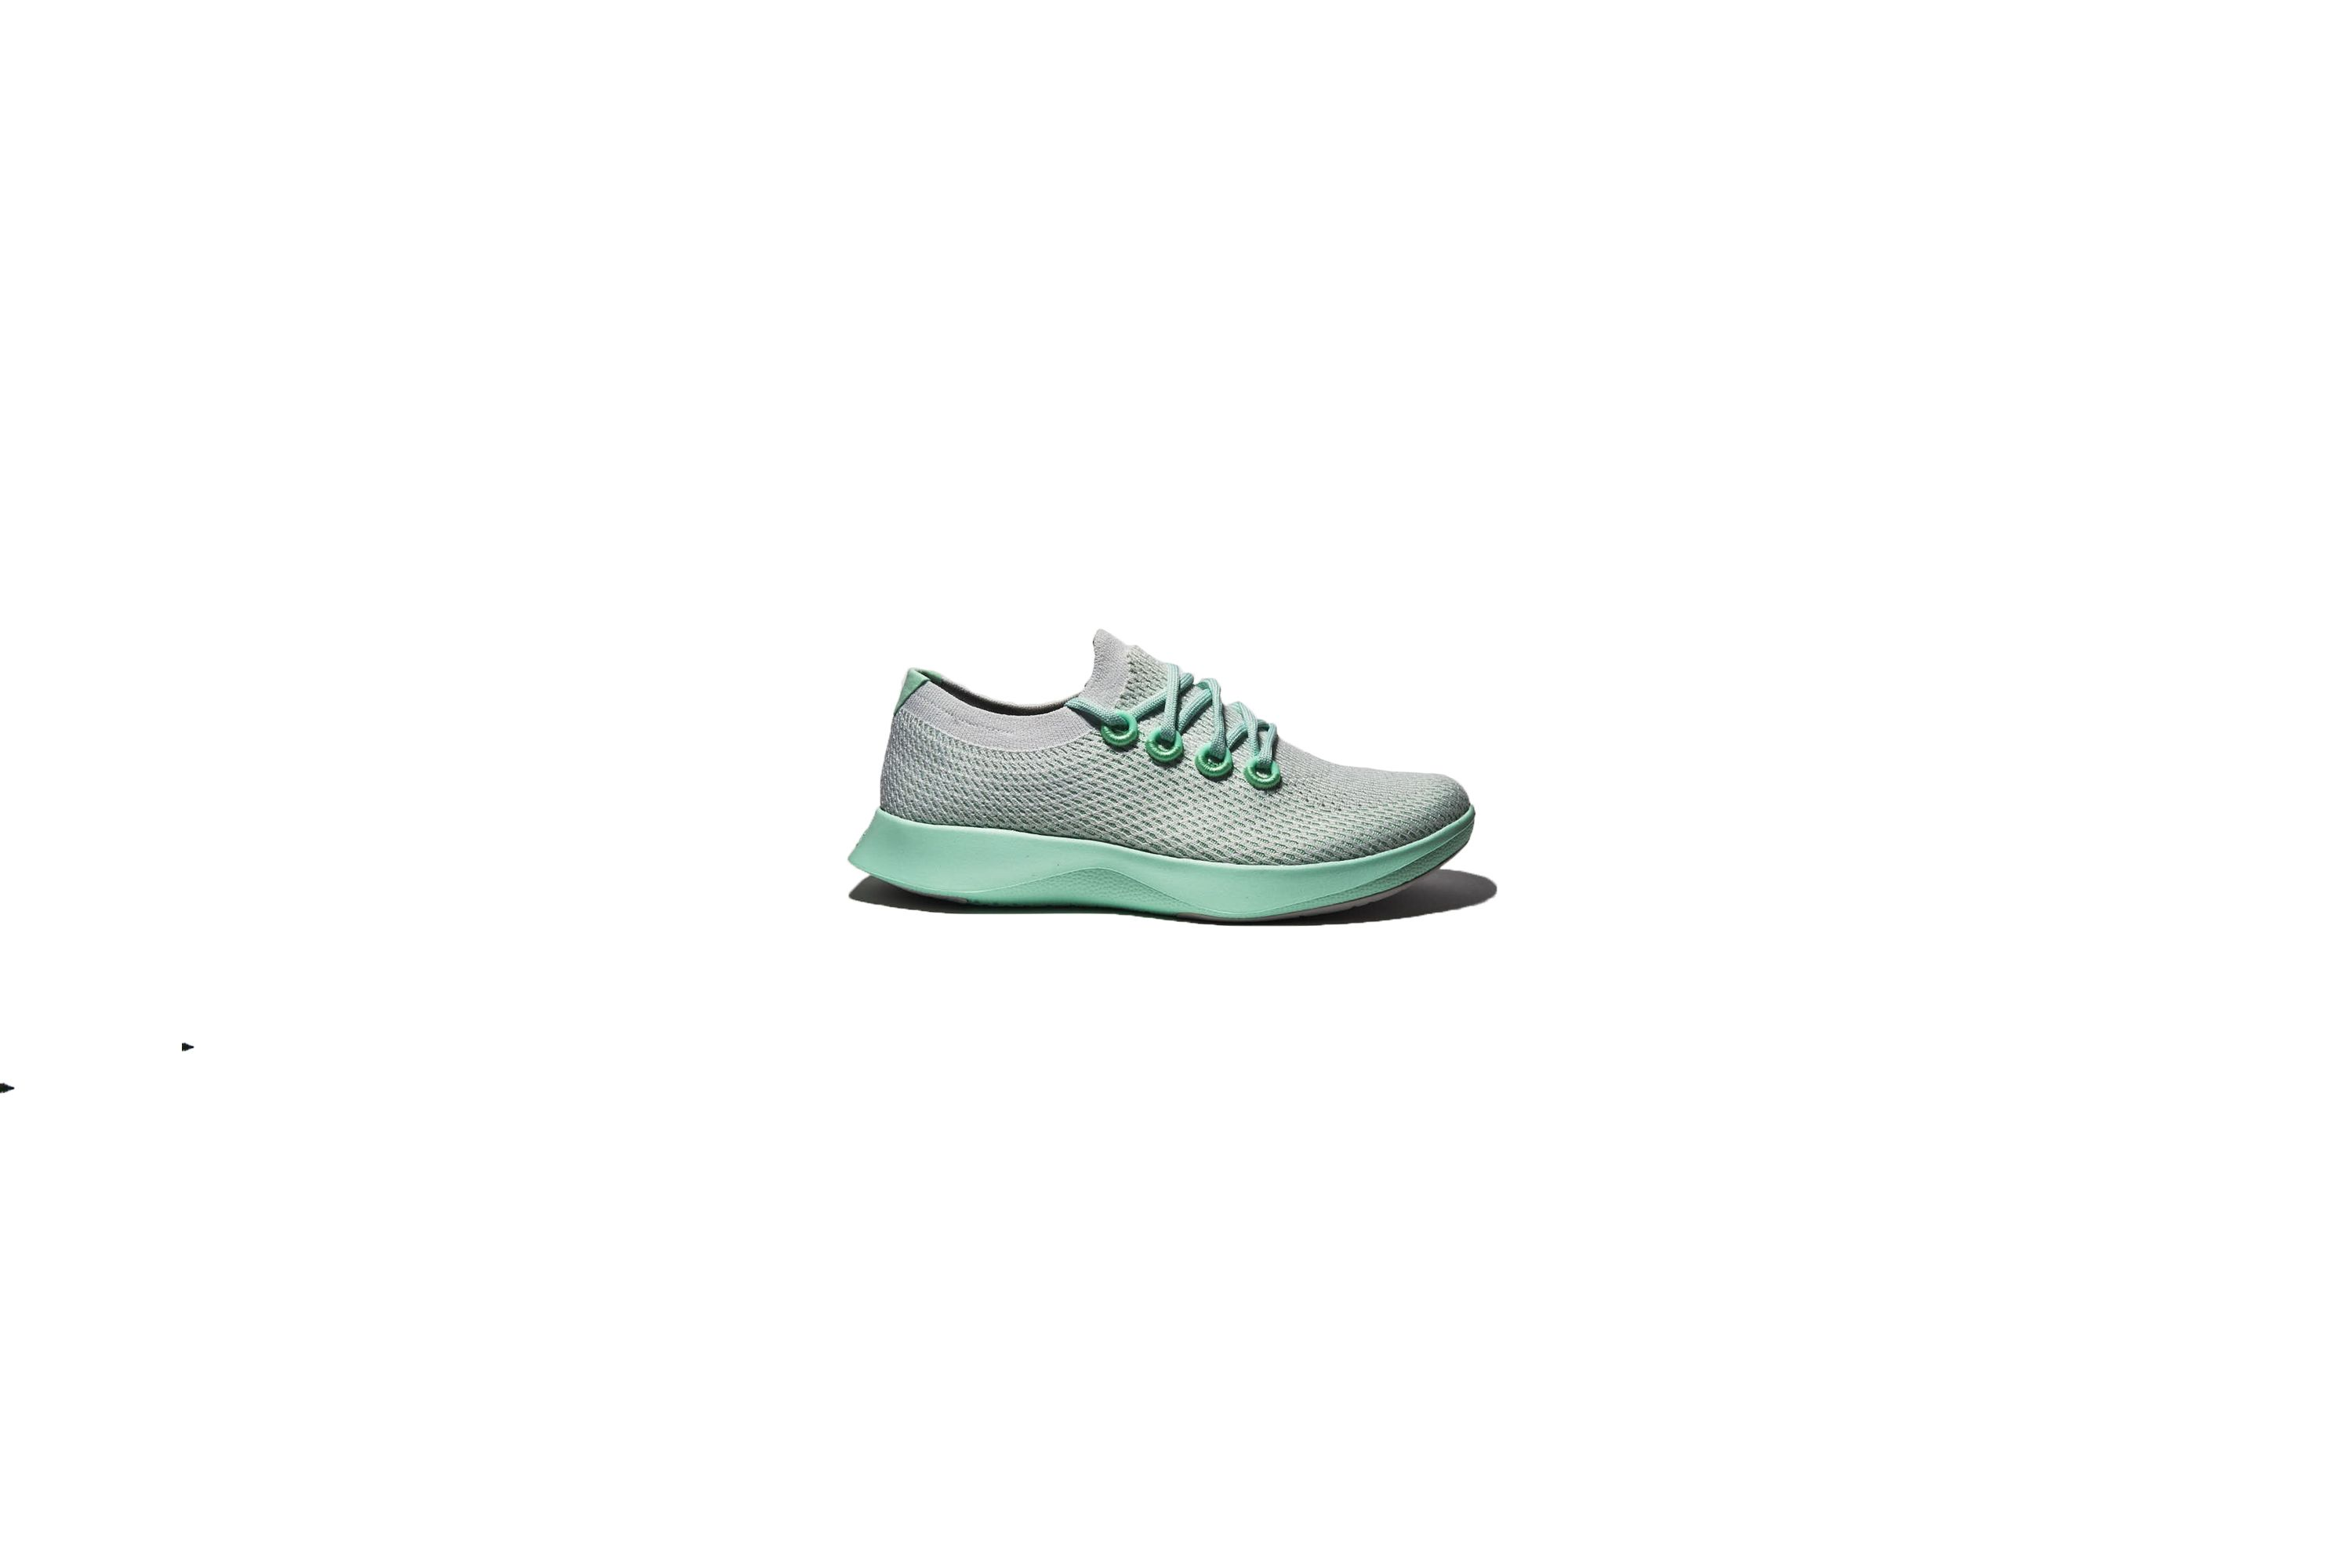 Cool Sneakers Releases